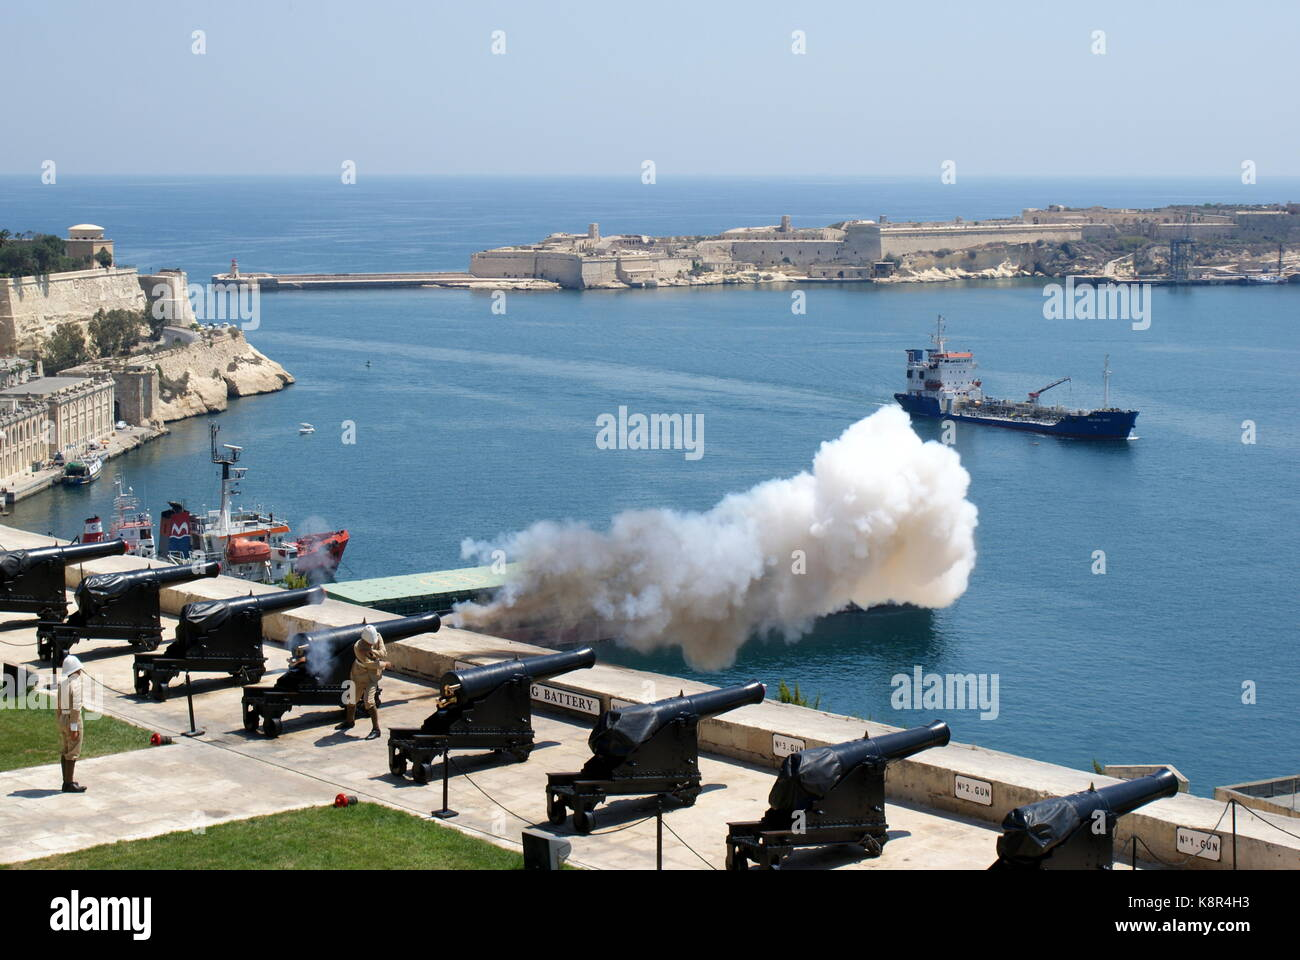 Cannon being fired at noon at the Saluting Battery, Upper Barracca Gardens, Valletta, Malta - Stock Image